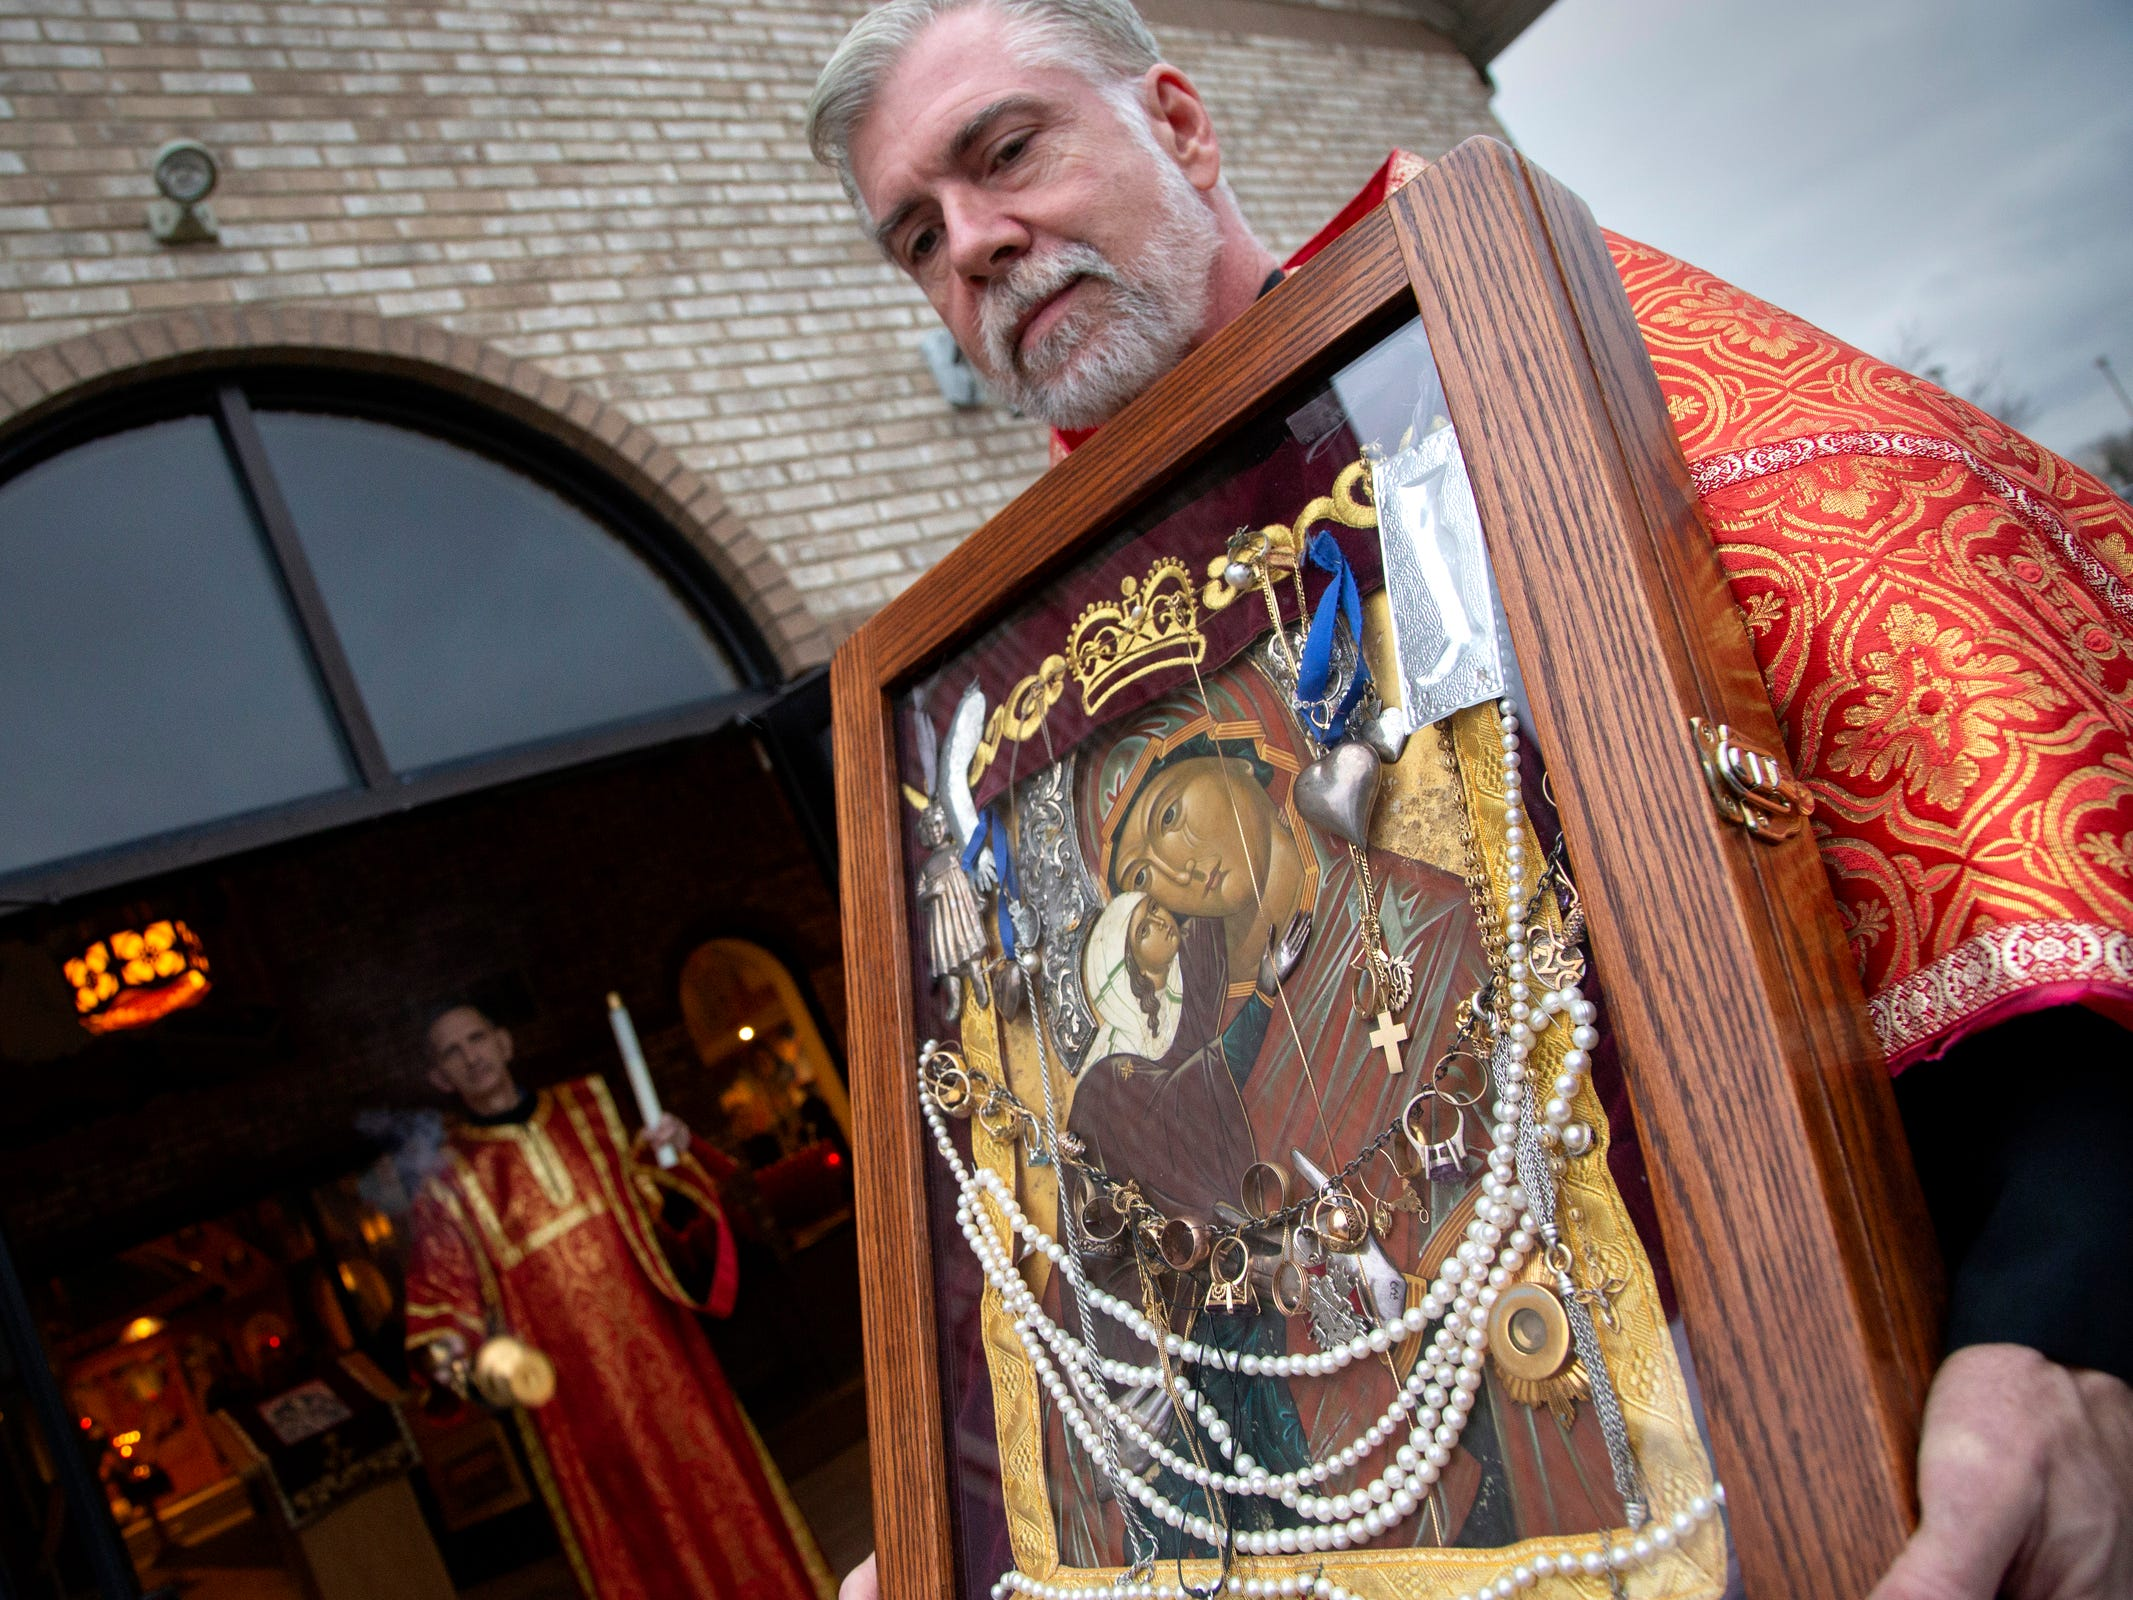 An icon of St. Anna was delivered to Fr. Michael Butler and Holy Transfiguration Orthodox Church in Livonia Saturday, Nov. 17, 2018. The icon was delivered by Monk Michael from St. Tikhon's monastery in Waymart Pennsylvania.